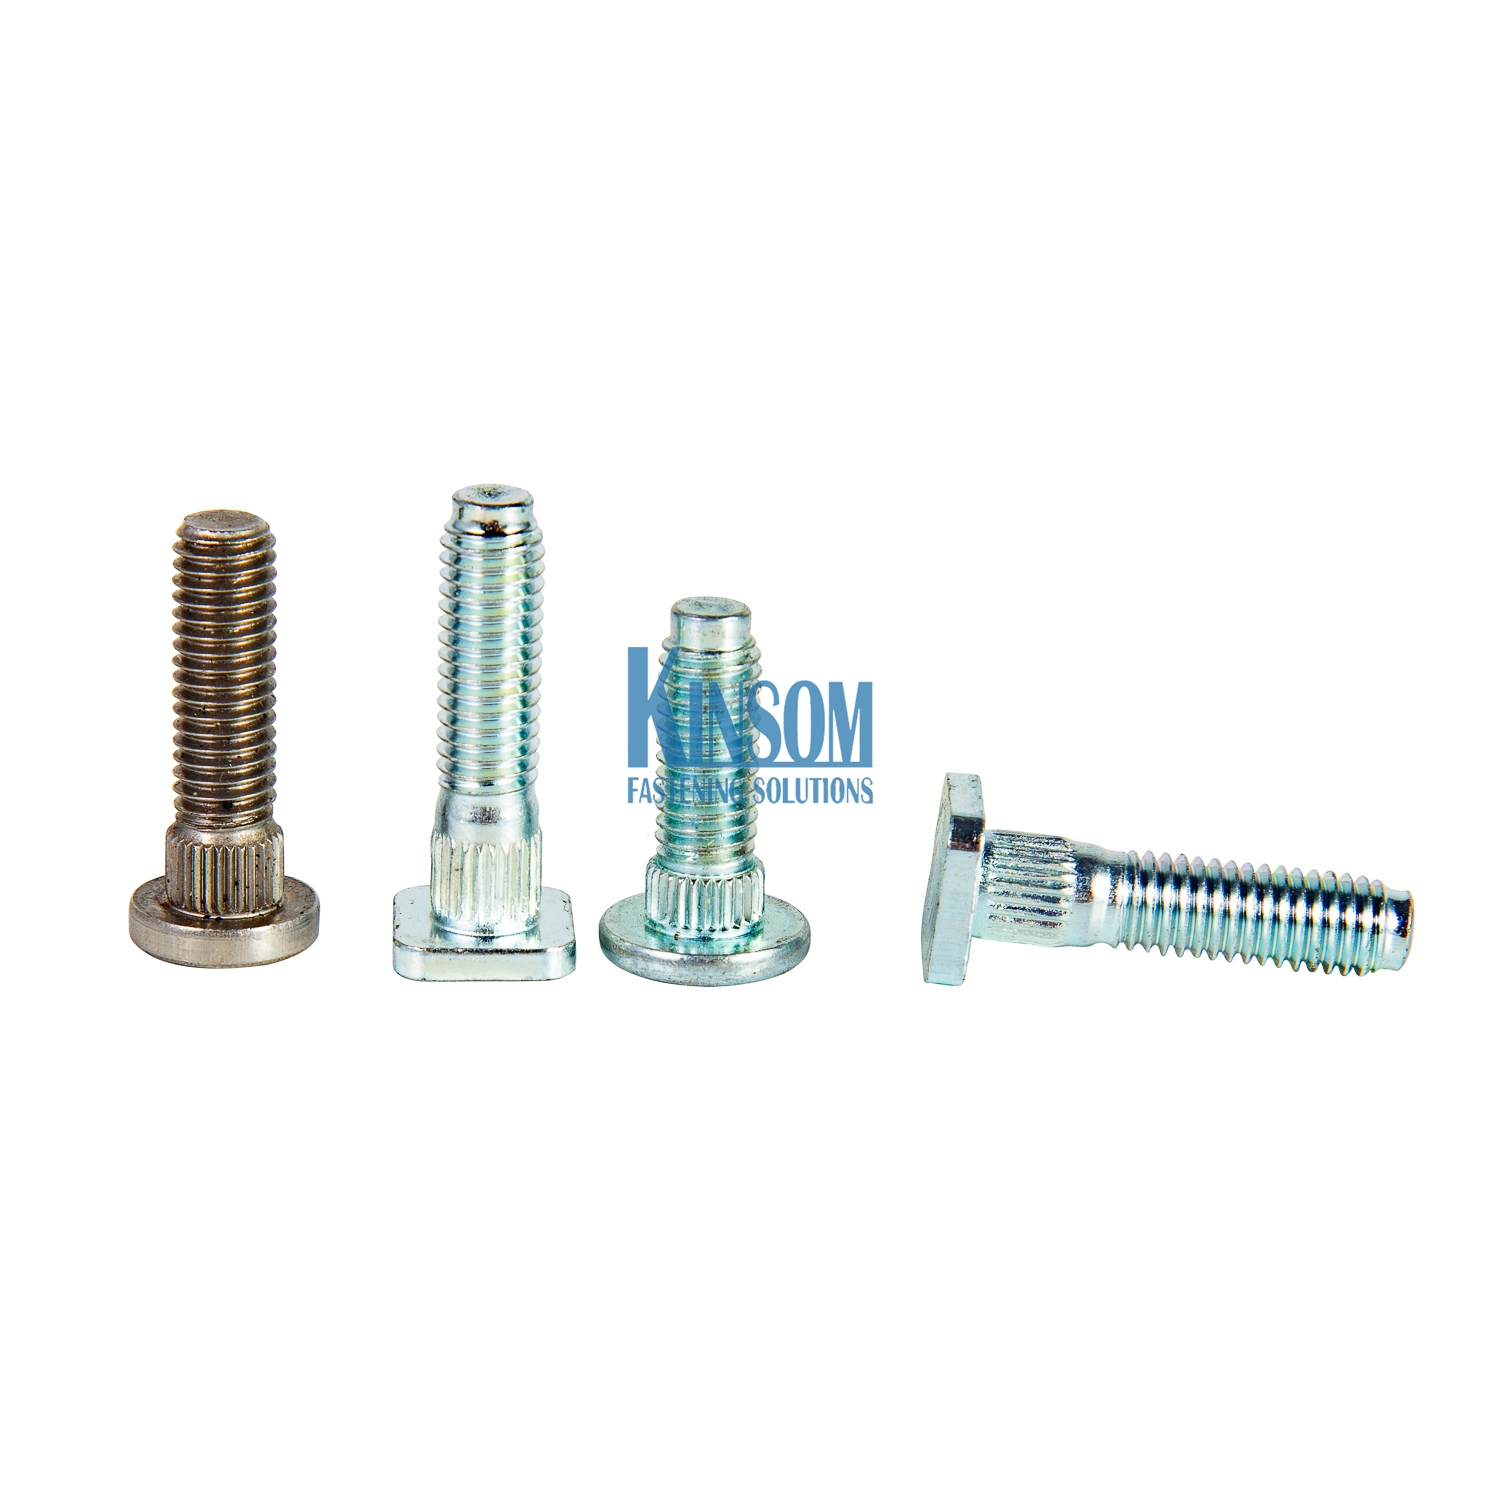 square knurled head machine screws automotive fasteners from kinsom